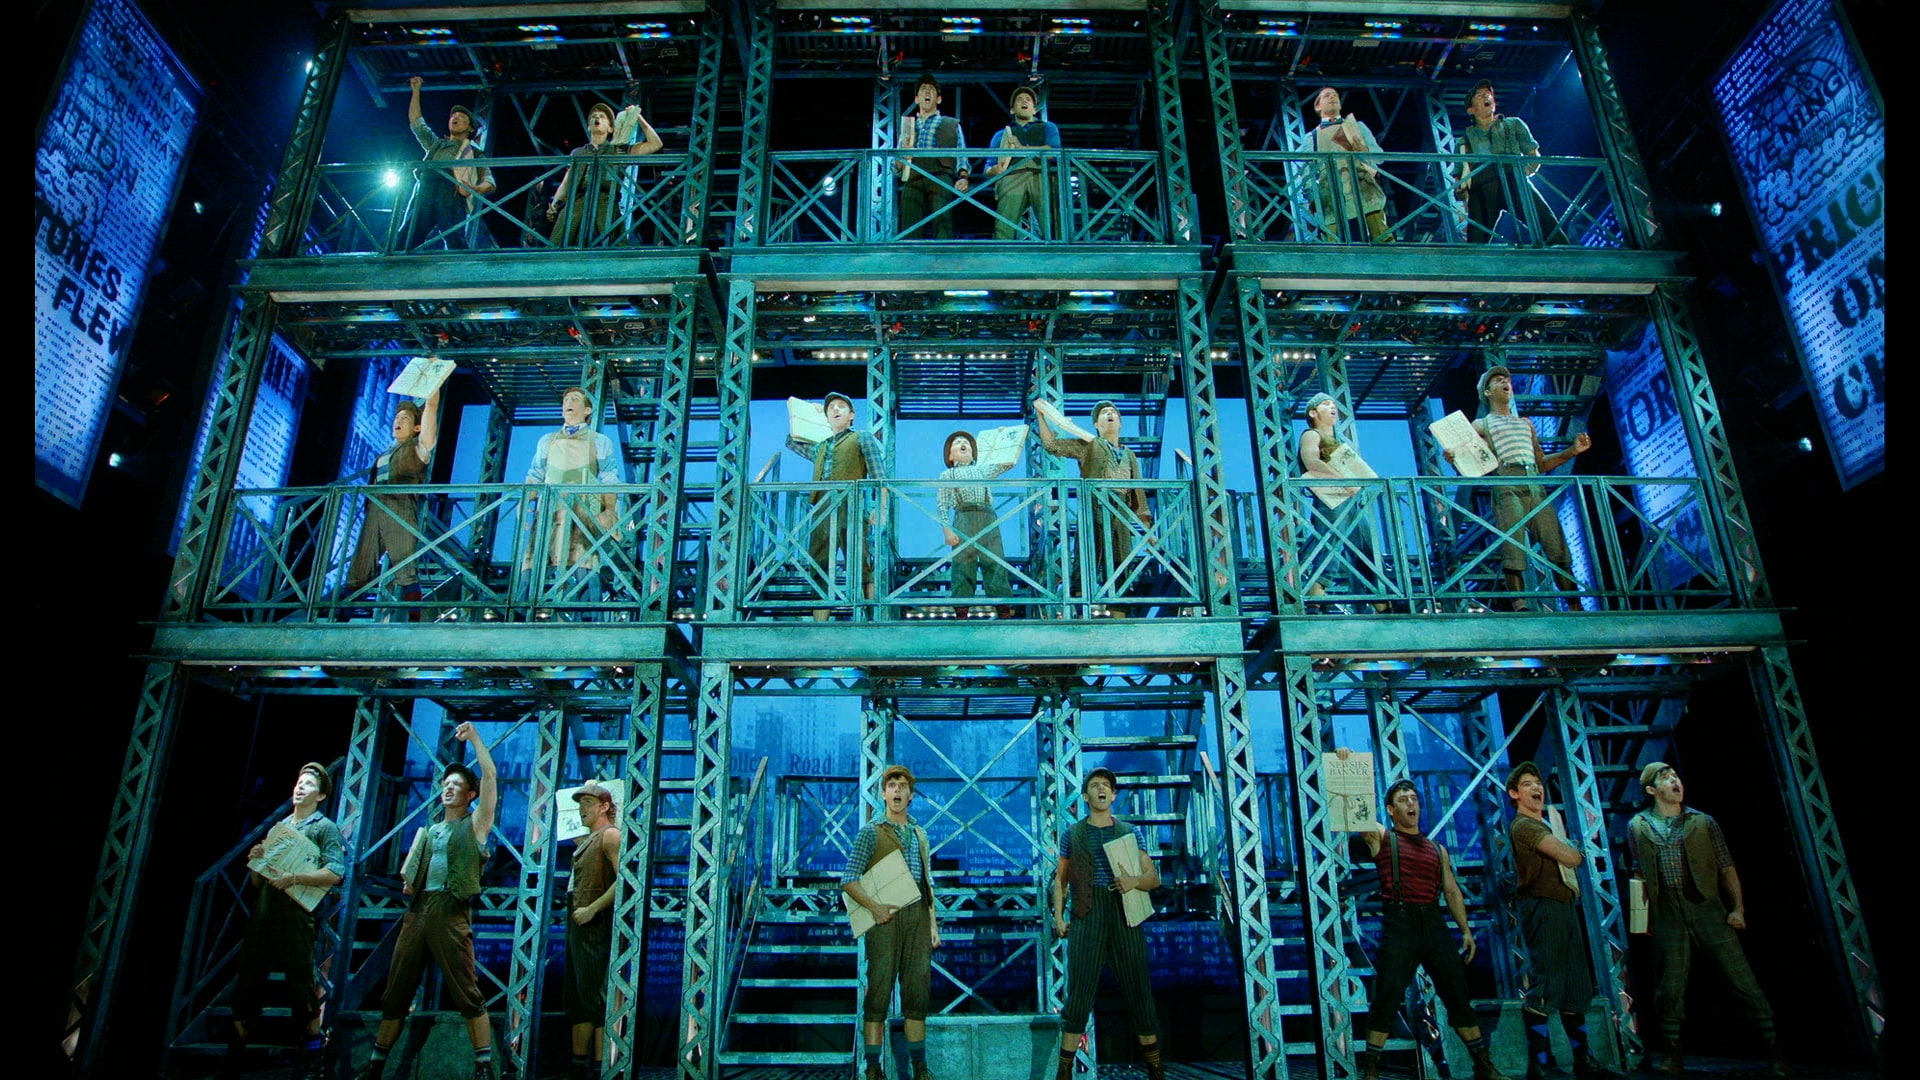 The Newsies cast performing on stage on a tiered structure